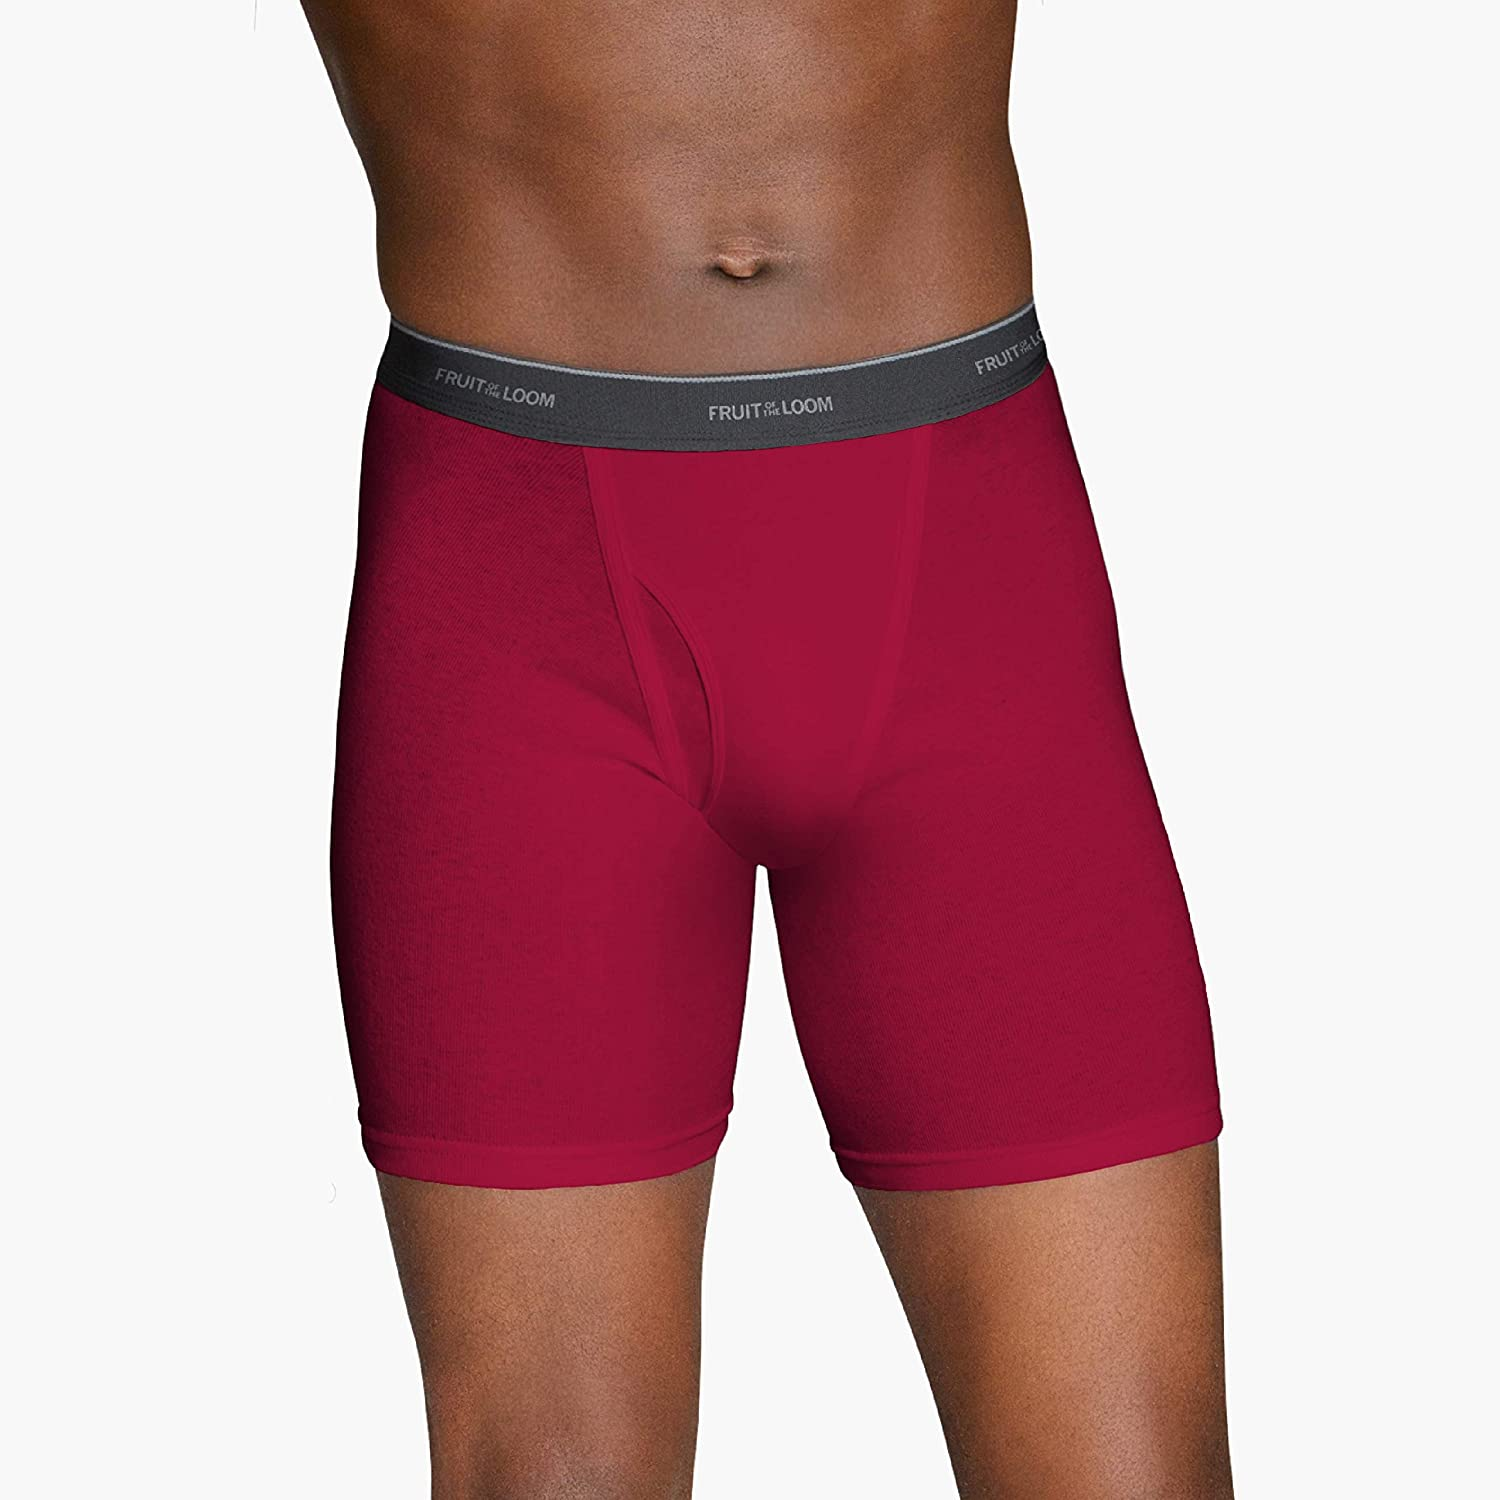 Fruit of the Loom Mens 5-Pack No Ride Up Assorted Boxer Brief